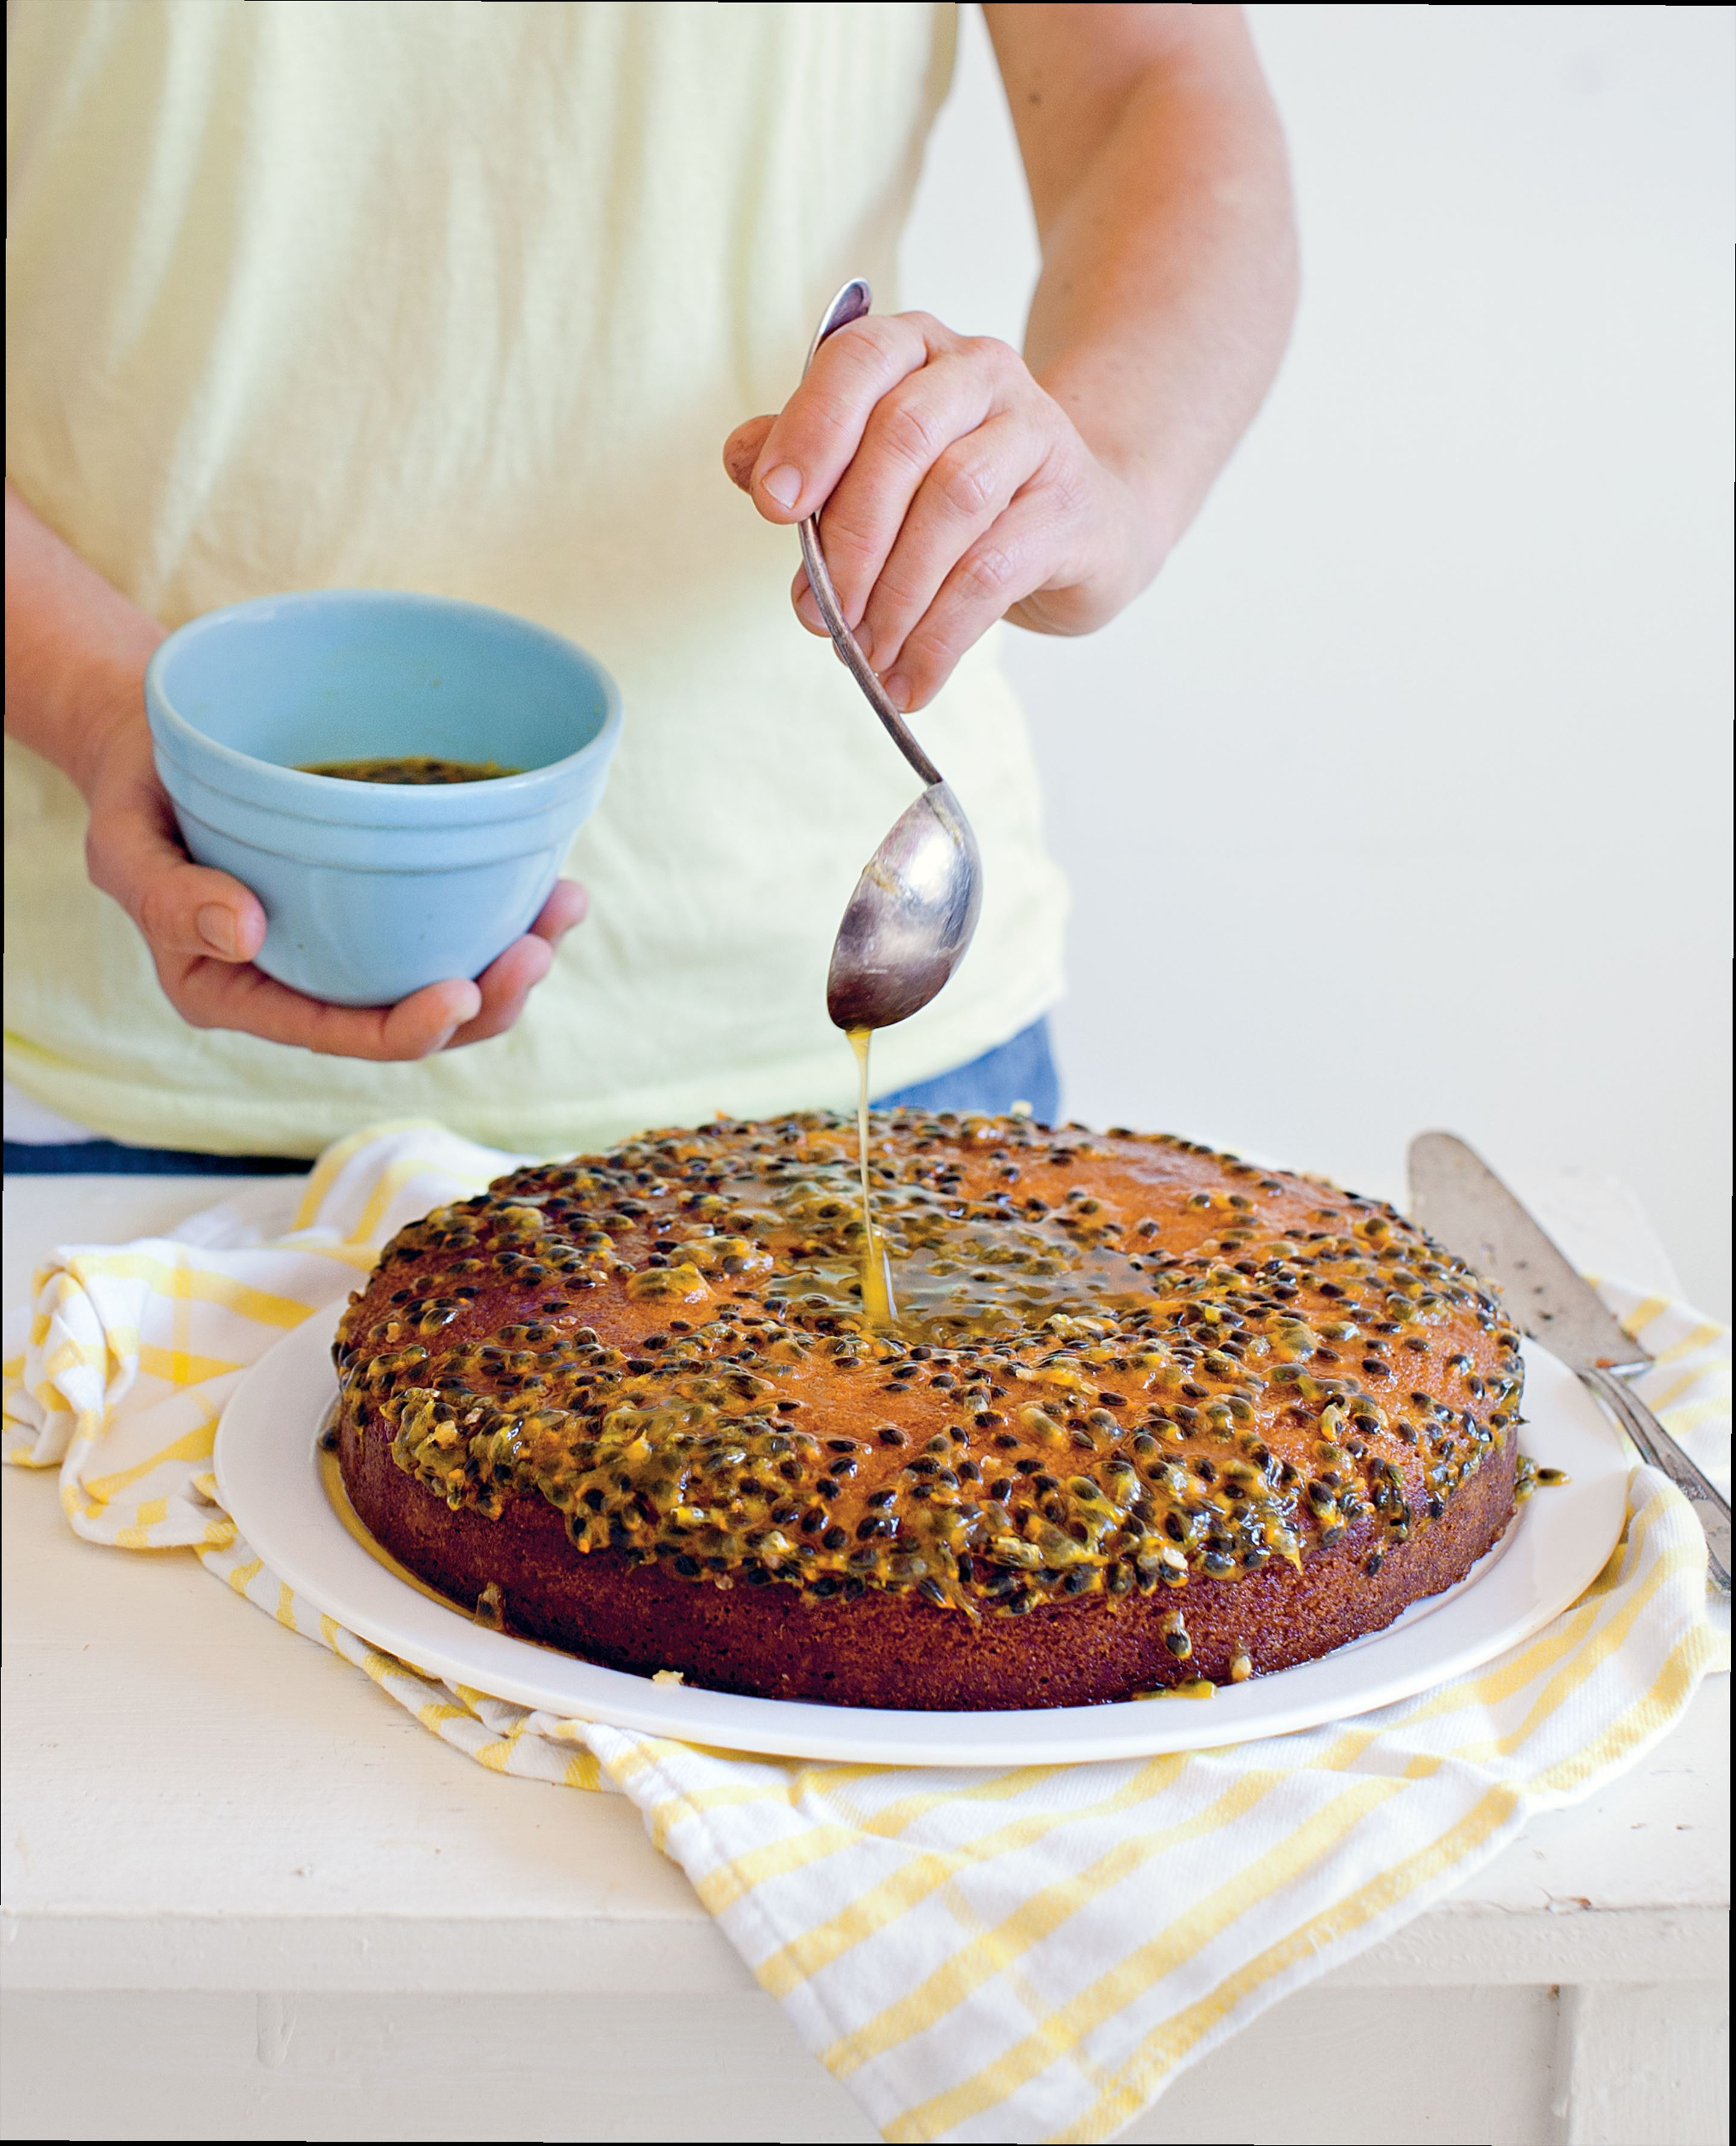 Passionfruit and polenta cake